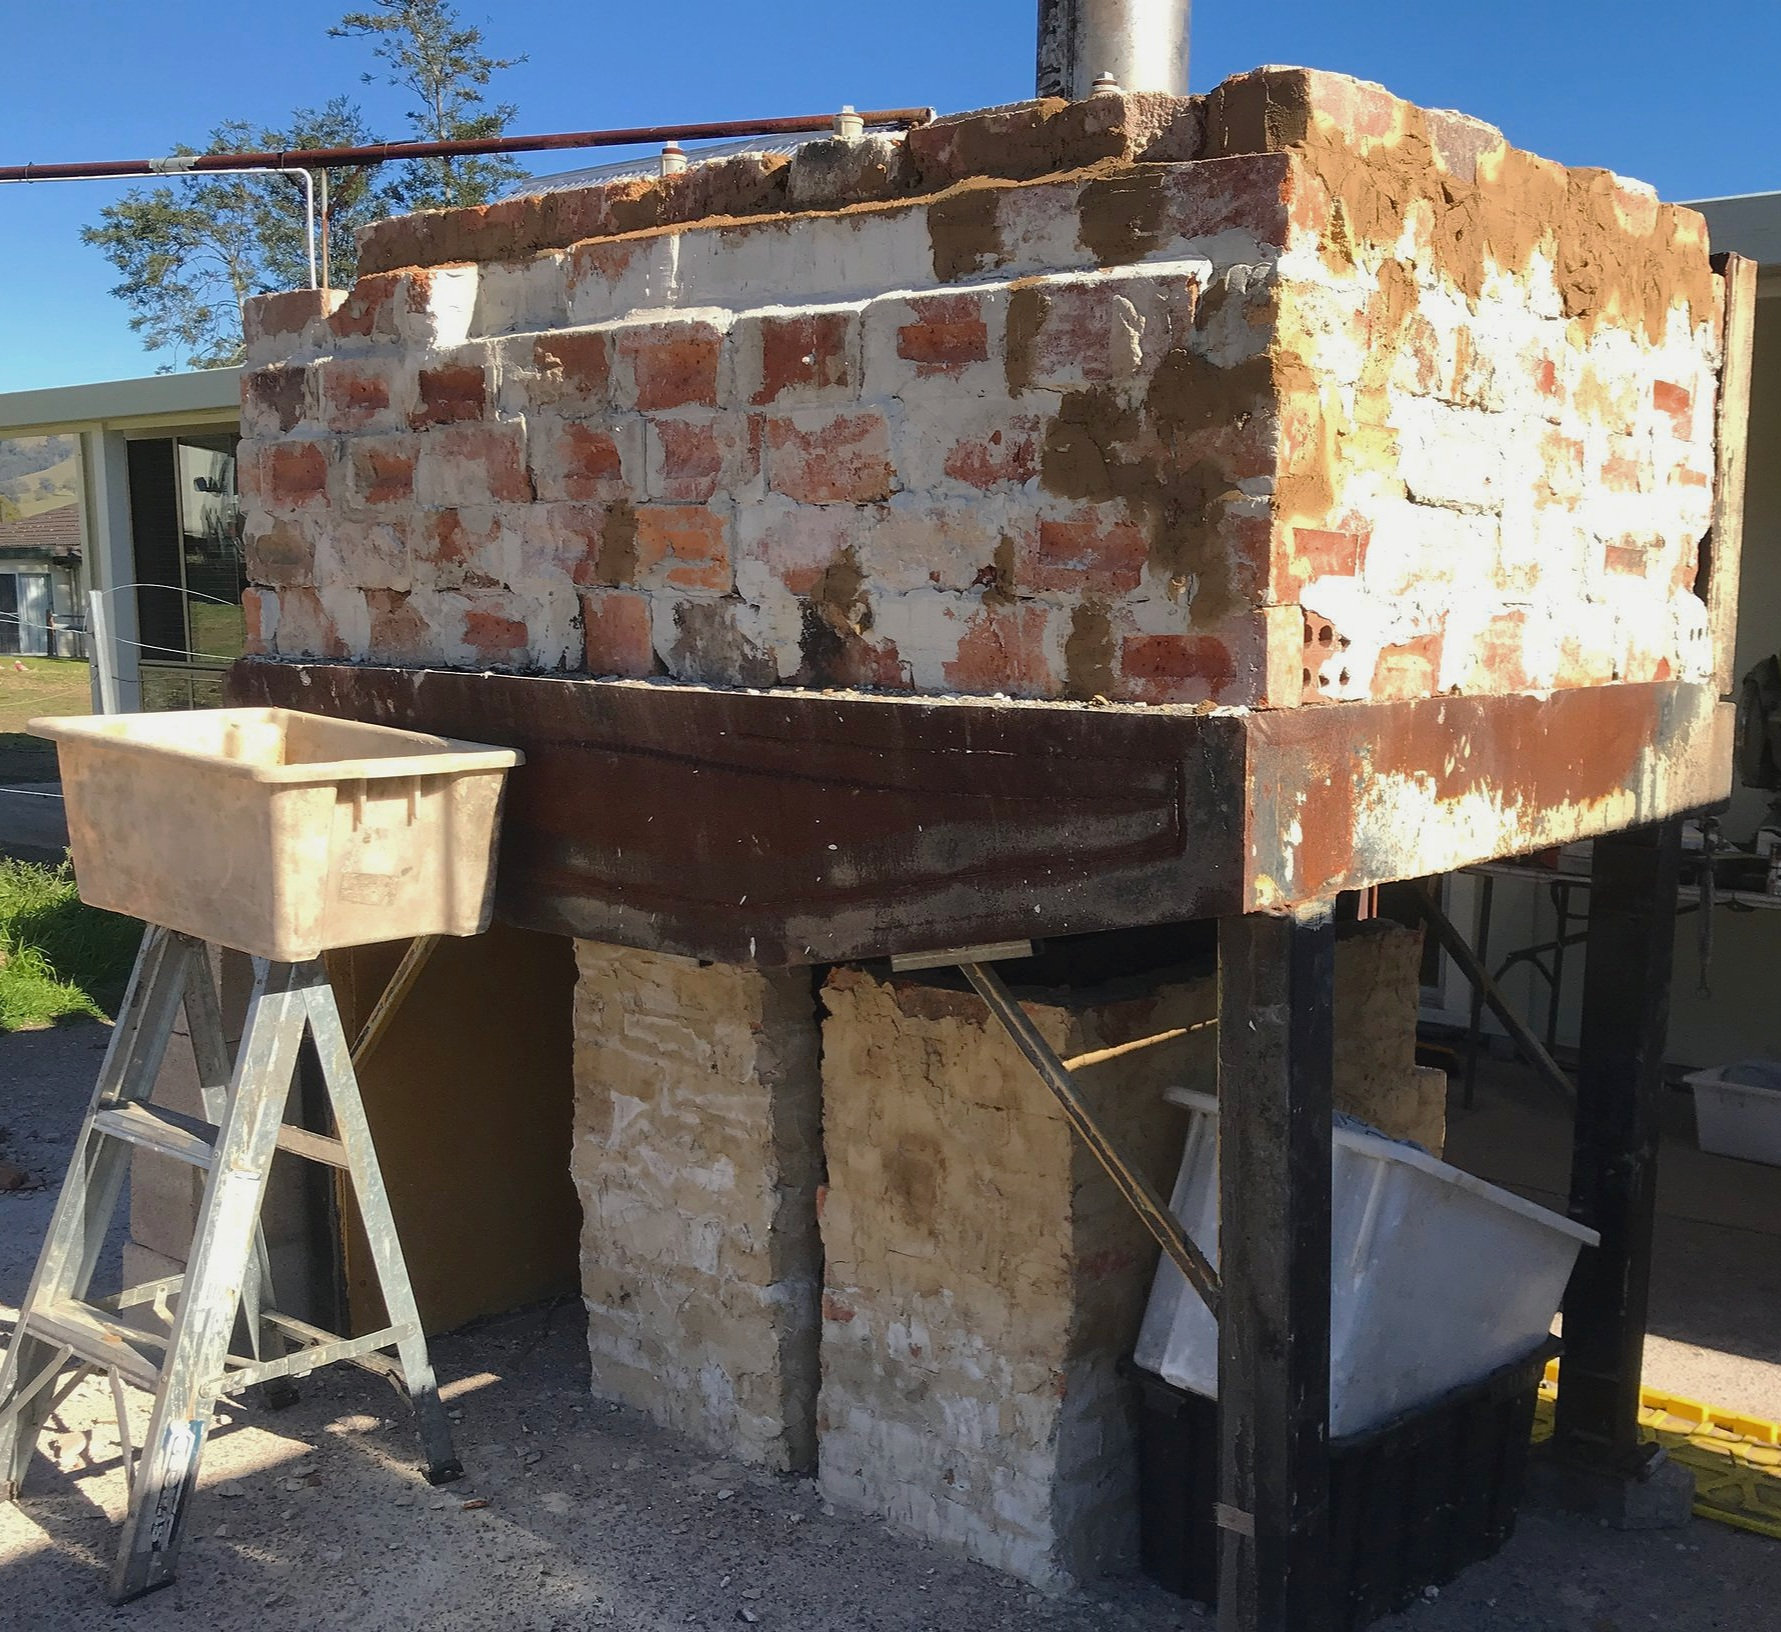 Luna 2 showing inner layer of brickwork. This will be wrapped with besser brick.